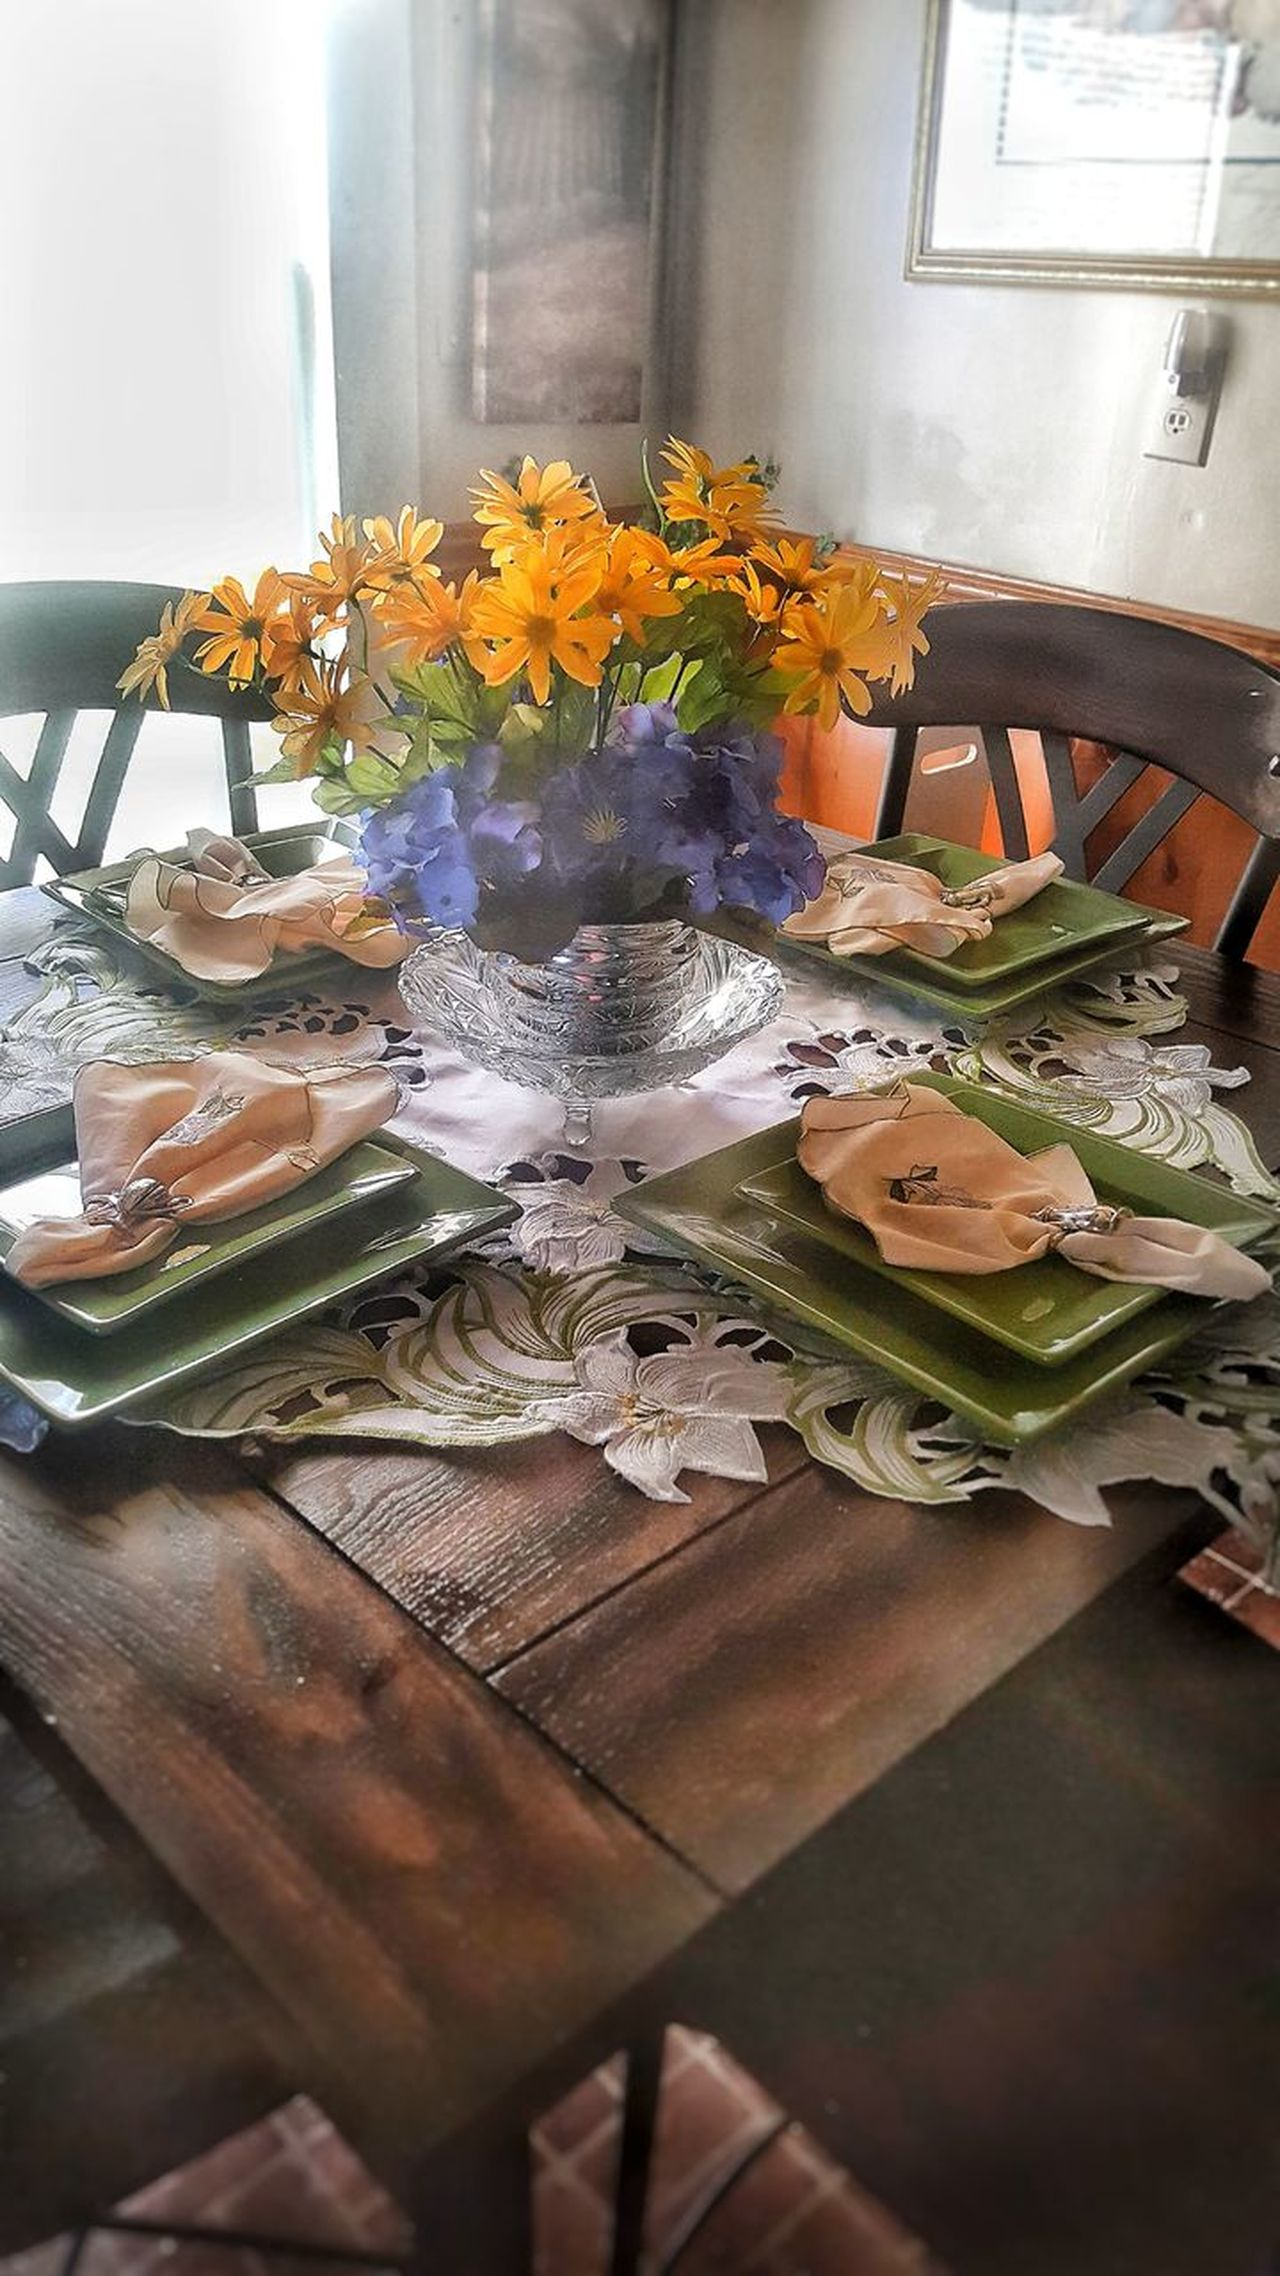 Indoors  Table No People IndoorPhotography Tablesetforfour Table Setting Kitchen Bouquet Flowerpower! Beauty In Ordinary Things Flowers Of EyeEm Centerpiece Table Top Photography Indoors  Wood - Material Peace And Tranquility Flower Plain And Simple  Multi Colored